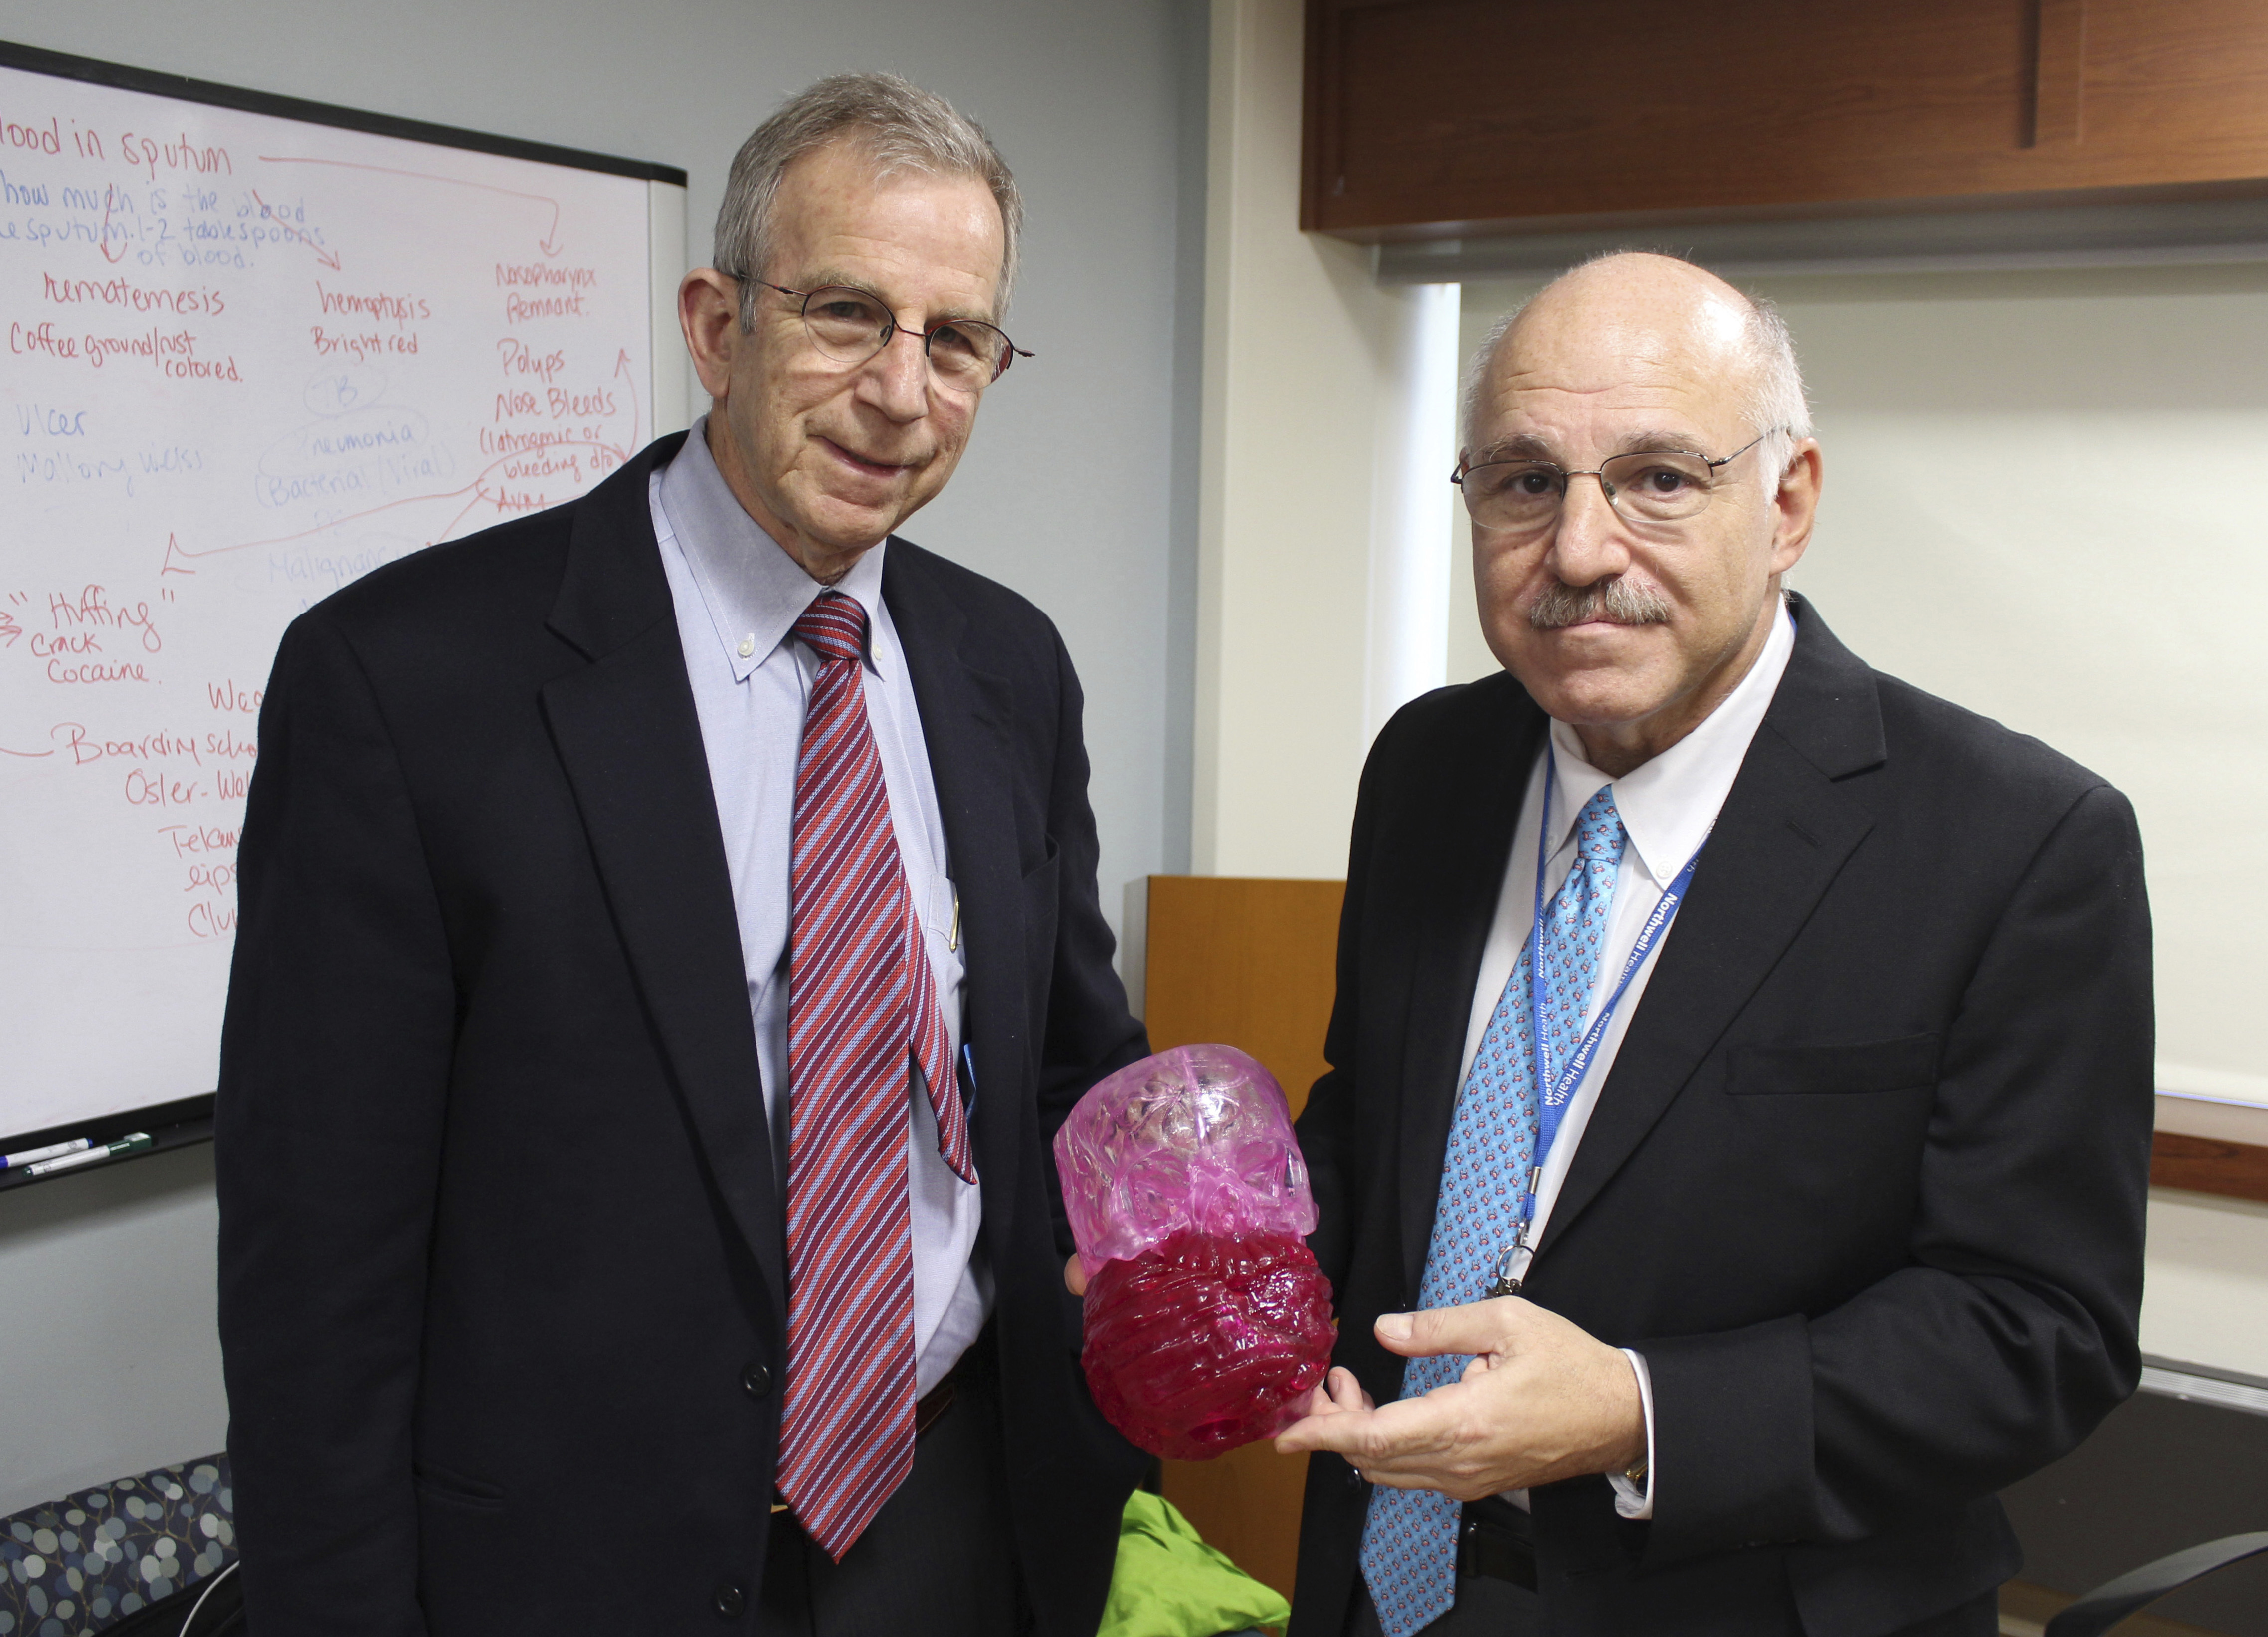 Dr. David Hoffman (L) and Dr. Armen Kasabian, hold a model of a tumor at Cohen's Children's Medical Center in New Hyde Park, N.Y., on March 10, 2017. (AP Photo/Frank Eltman).